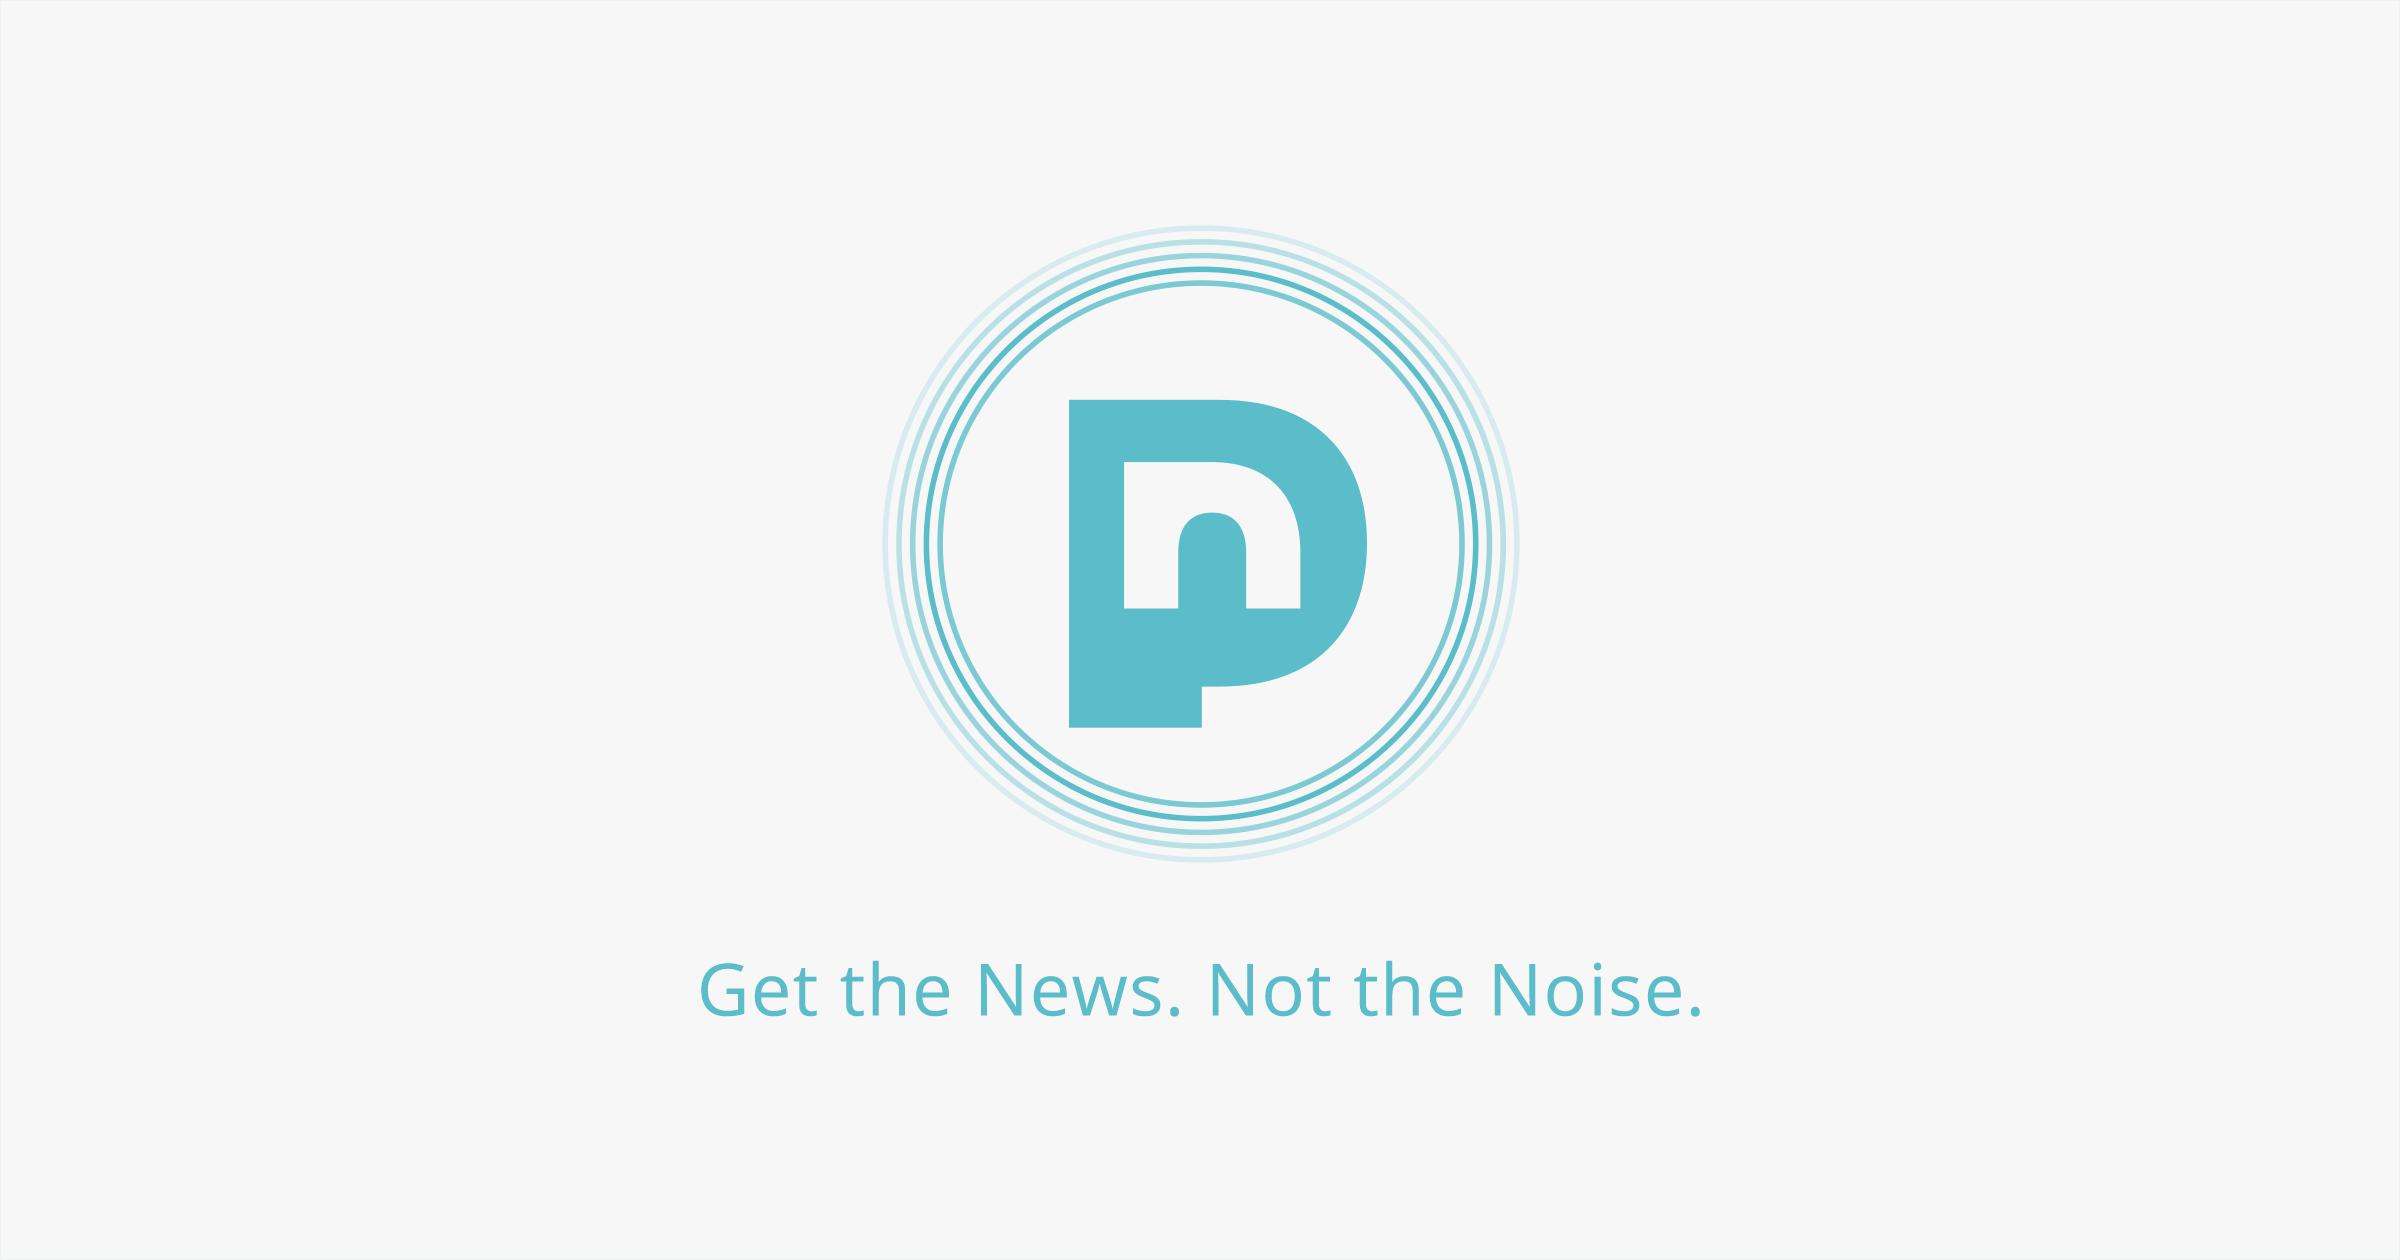 In the months to come, Purified News will redefine the way news is gathered and communicated to the world. We are in our beta testing phase right now,